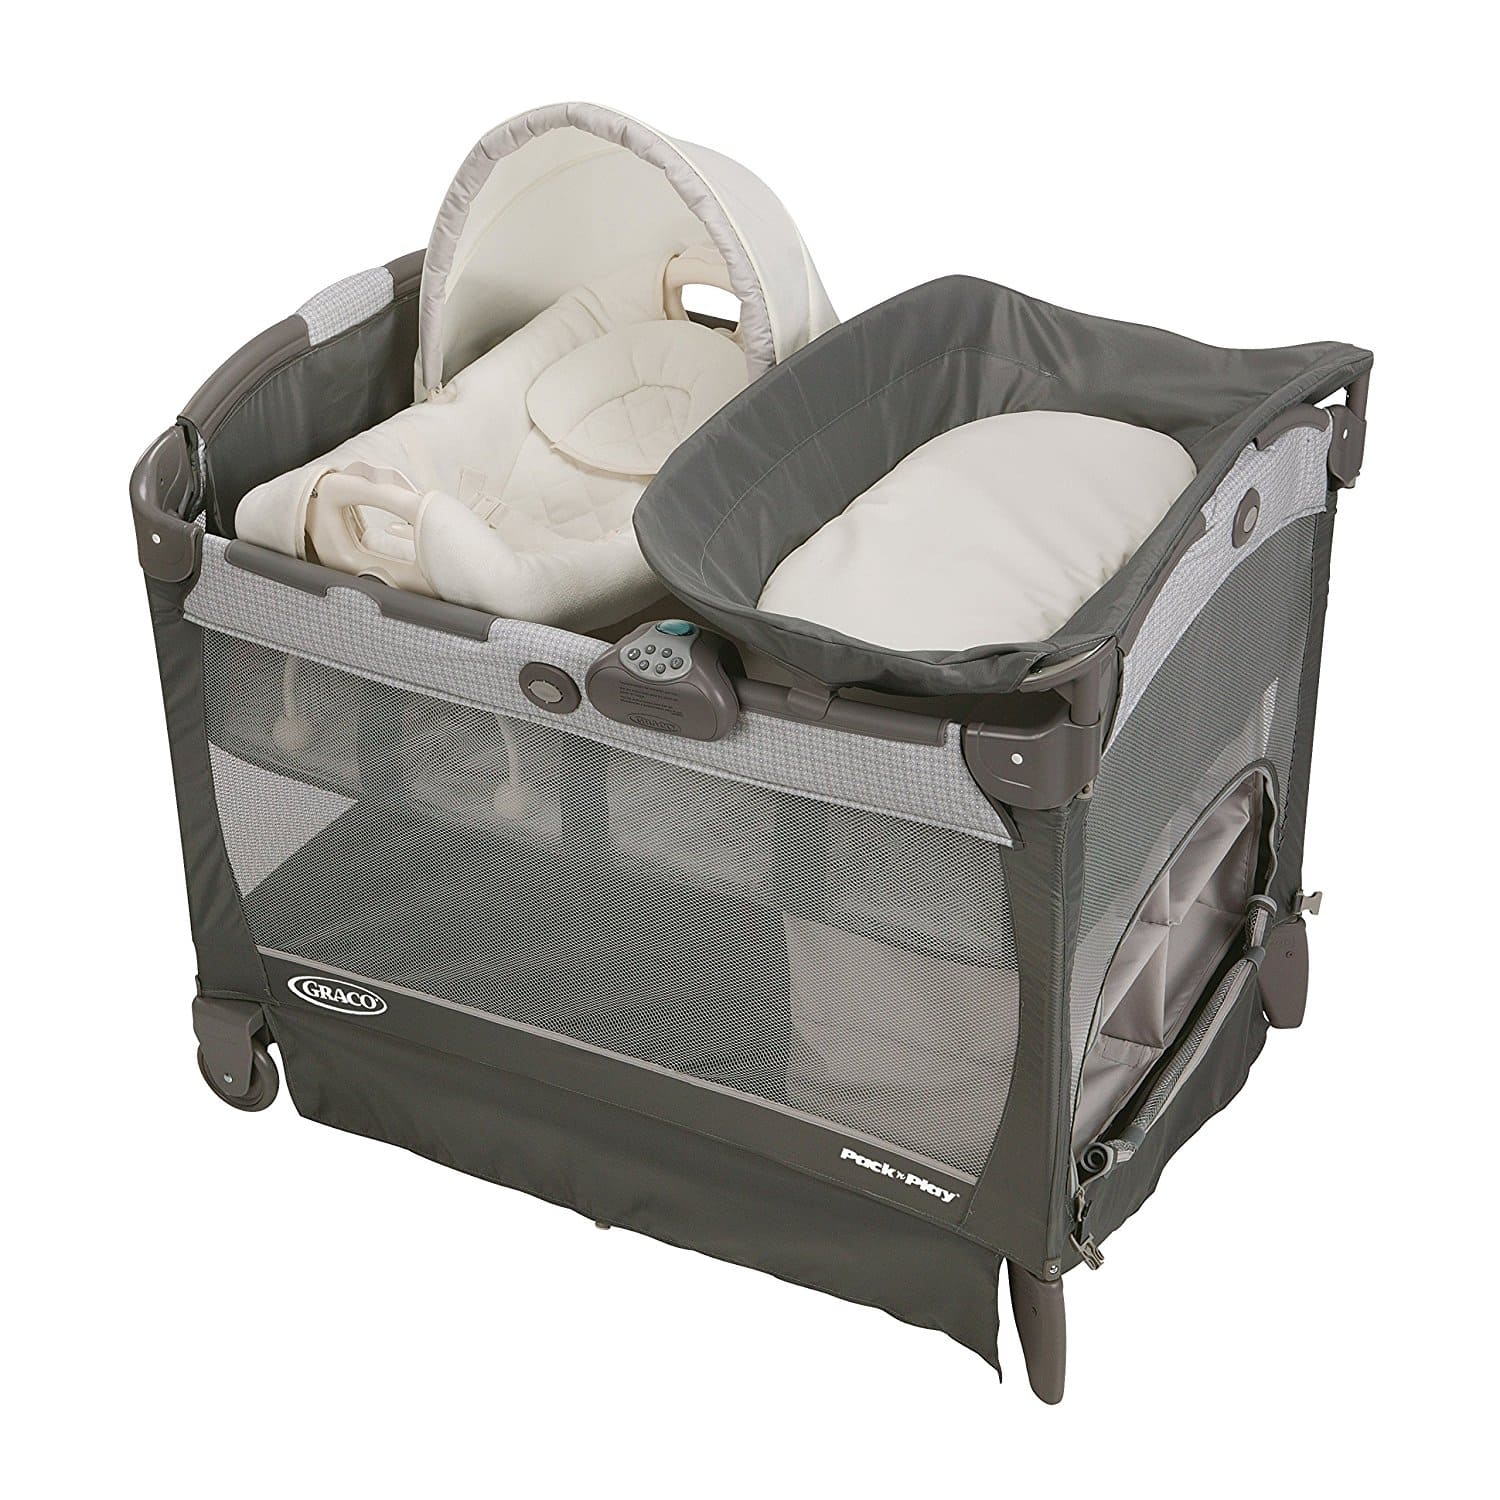 Graco Pack 'N Play Playard with Cuddle Cove Removable Seat (Glacier) $84.78 + Free Shipping